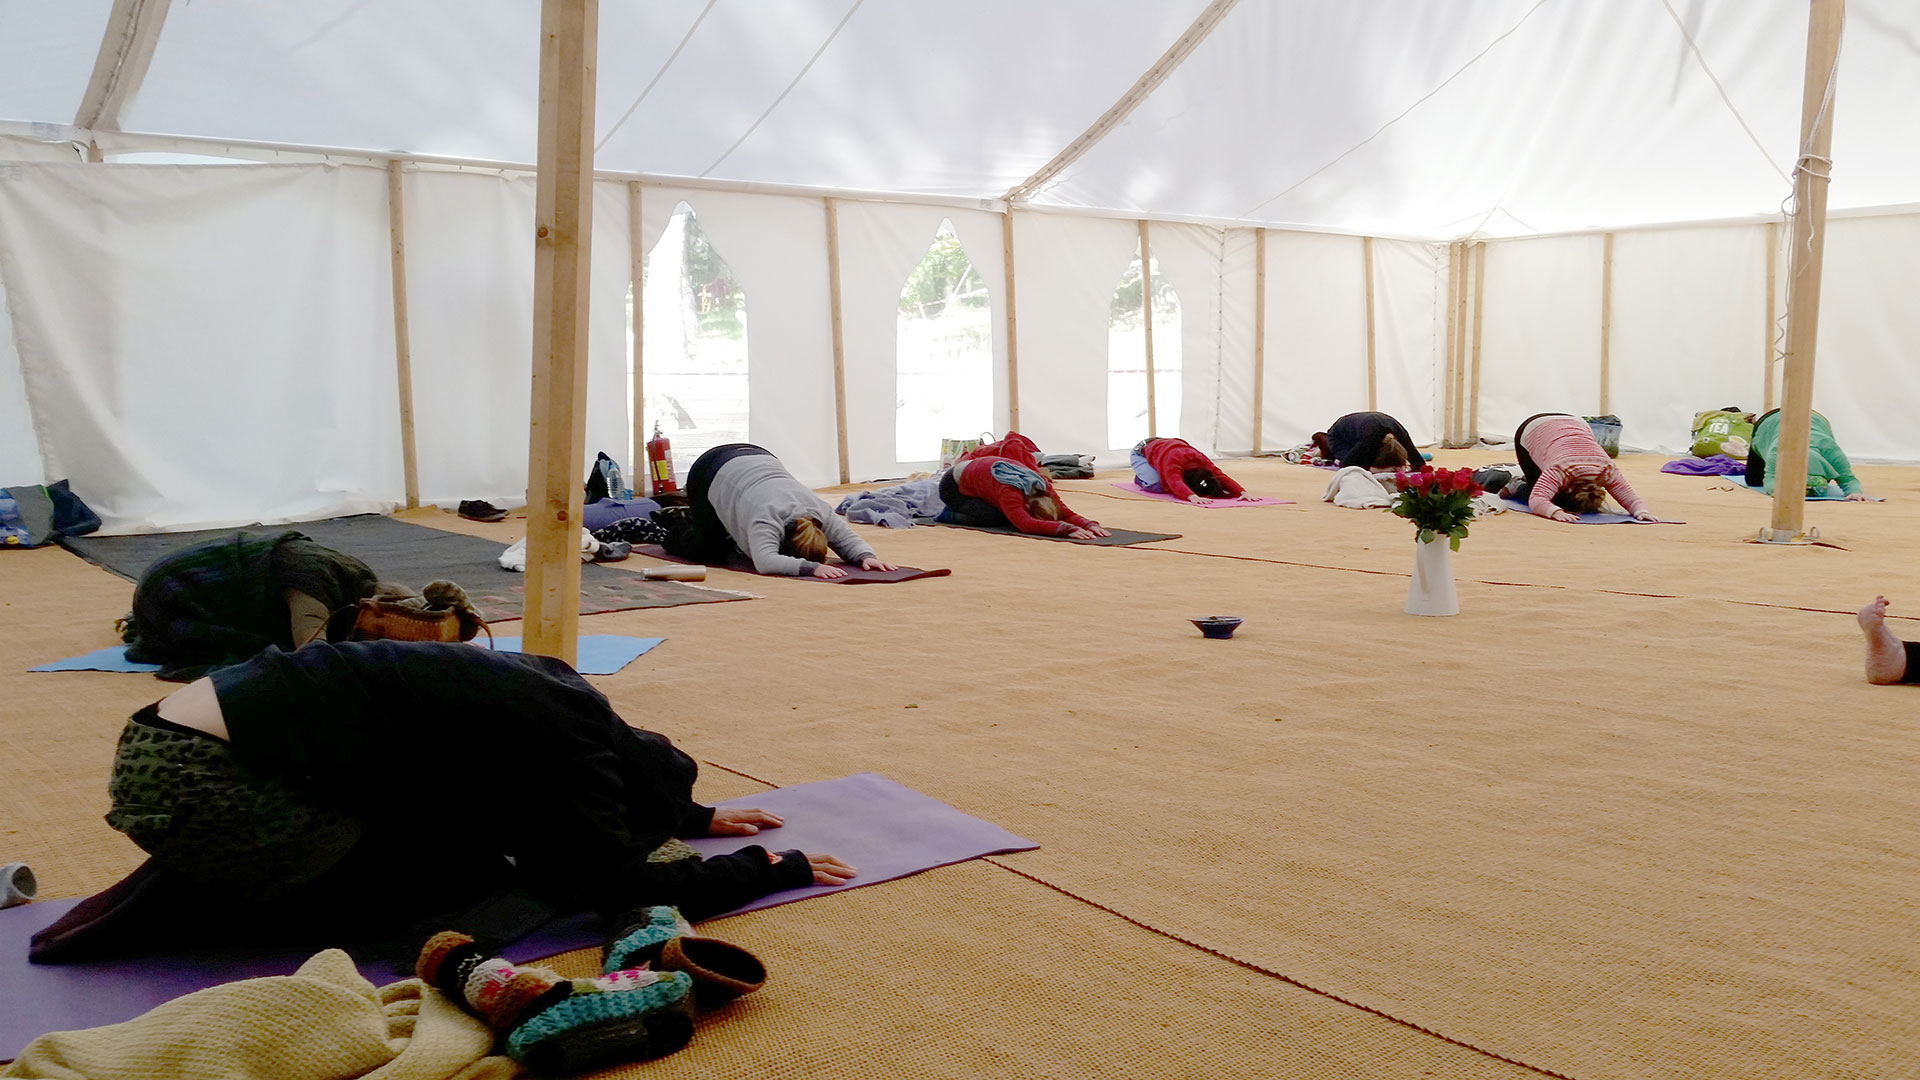 Yoga in the spacious carpeted marquee